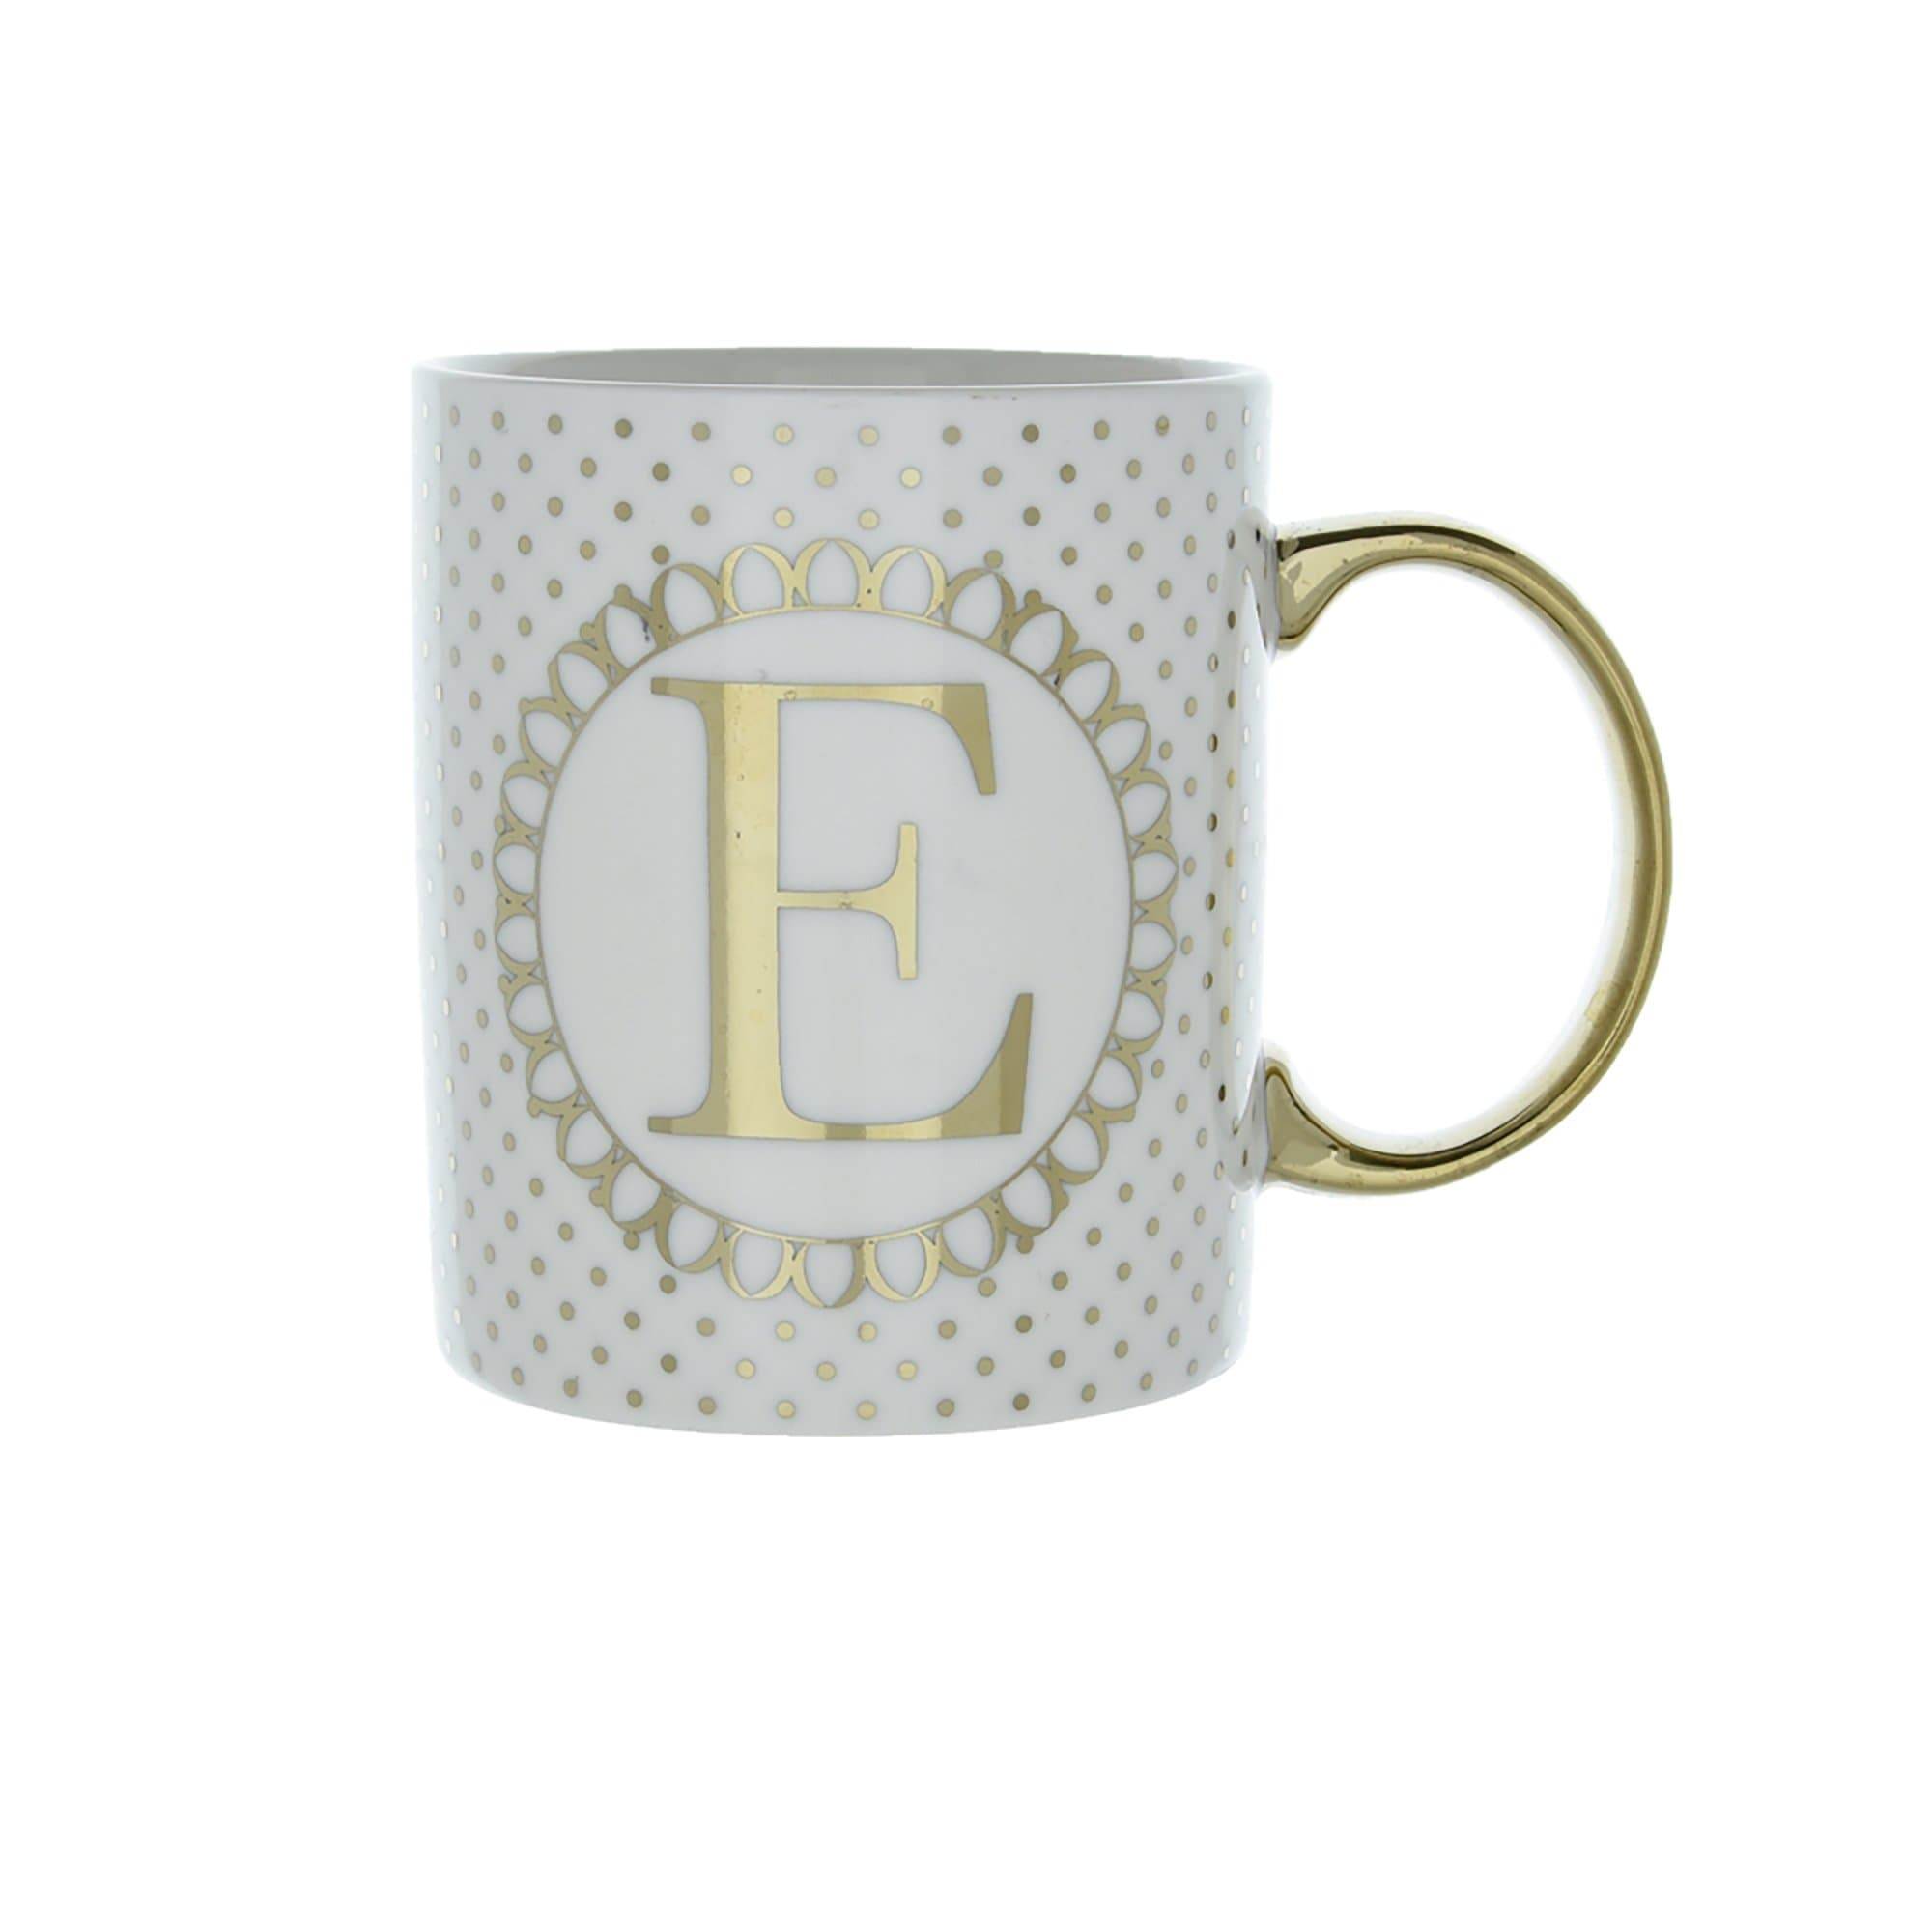 Candlelight Home Mugs Initial Straight Sided Mug E Gold 8cm 6PK